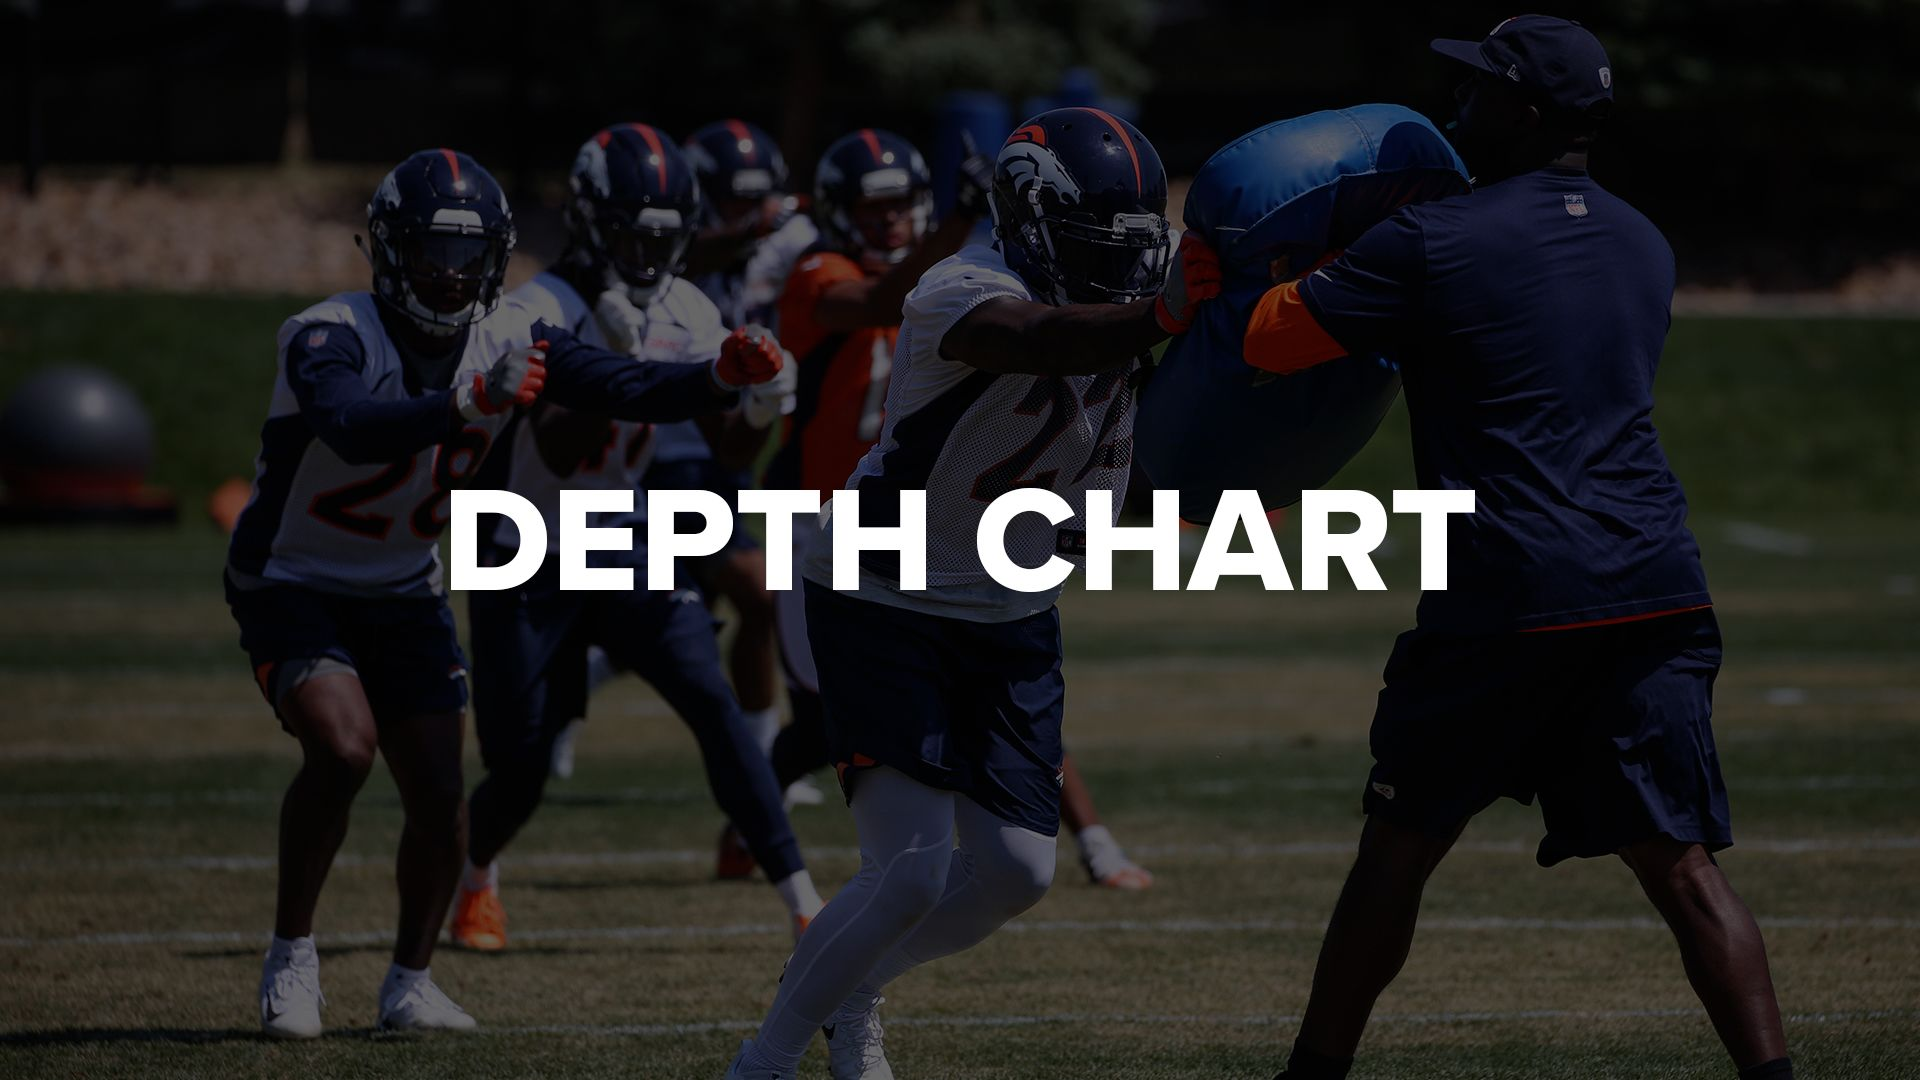 Depth chart is unavailable during the offseason